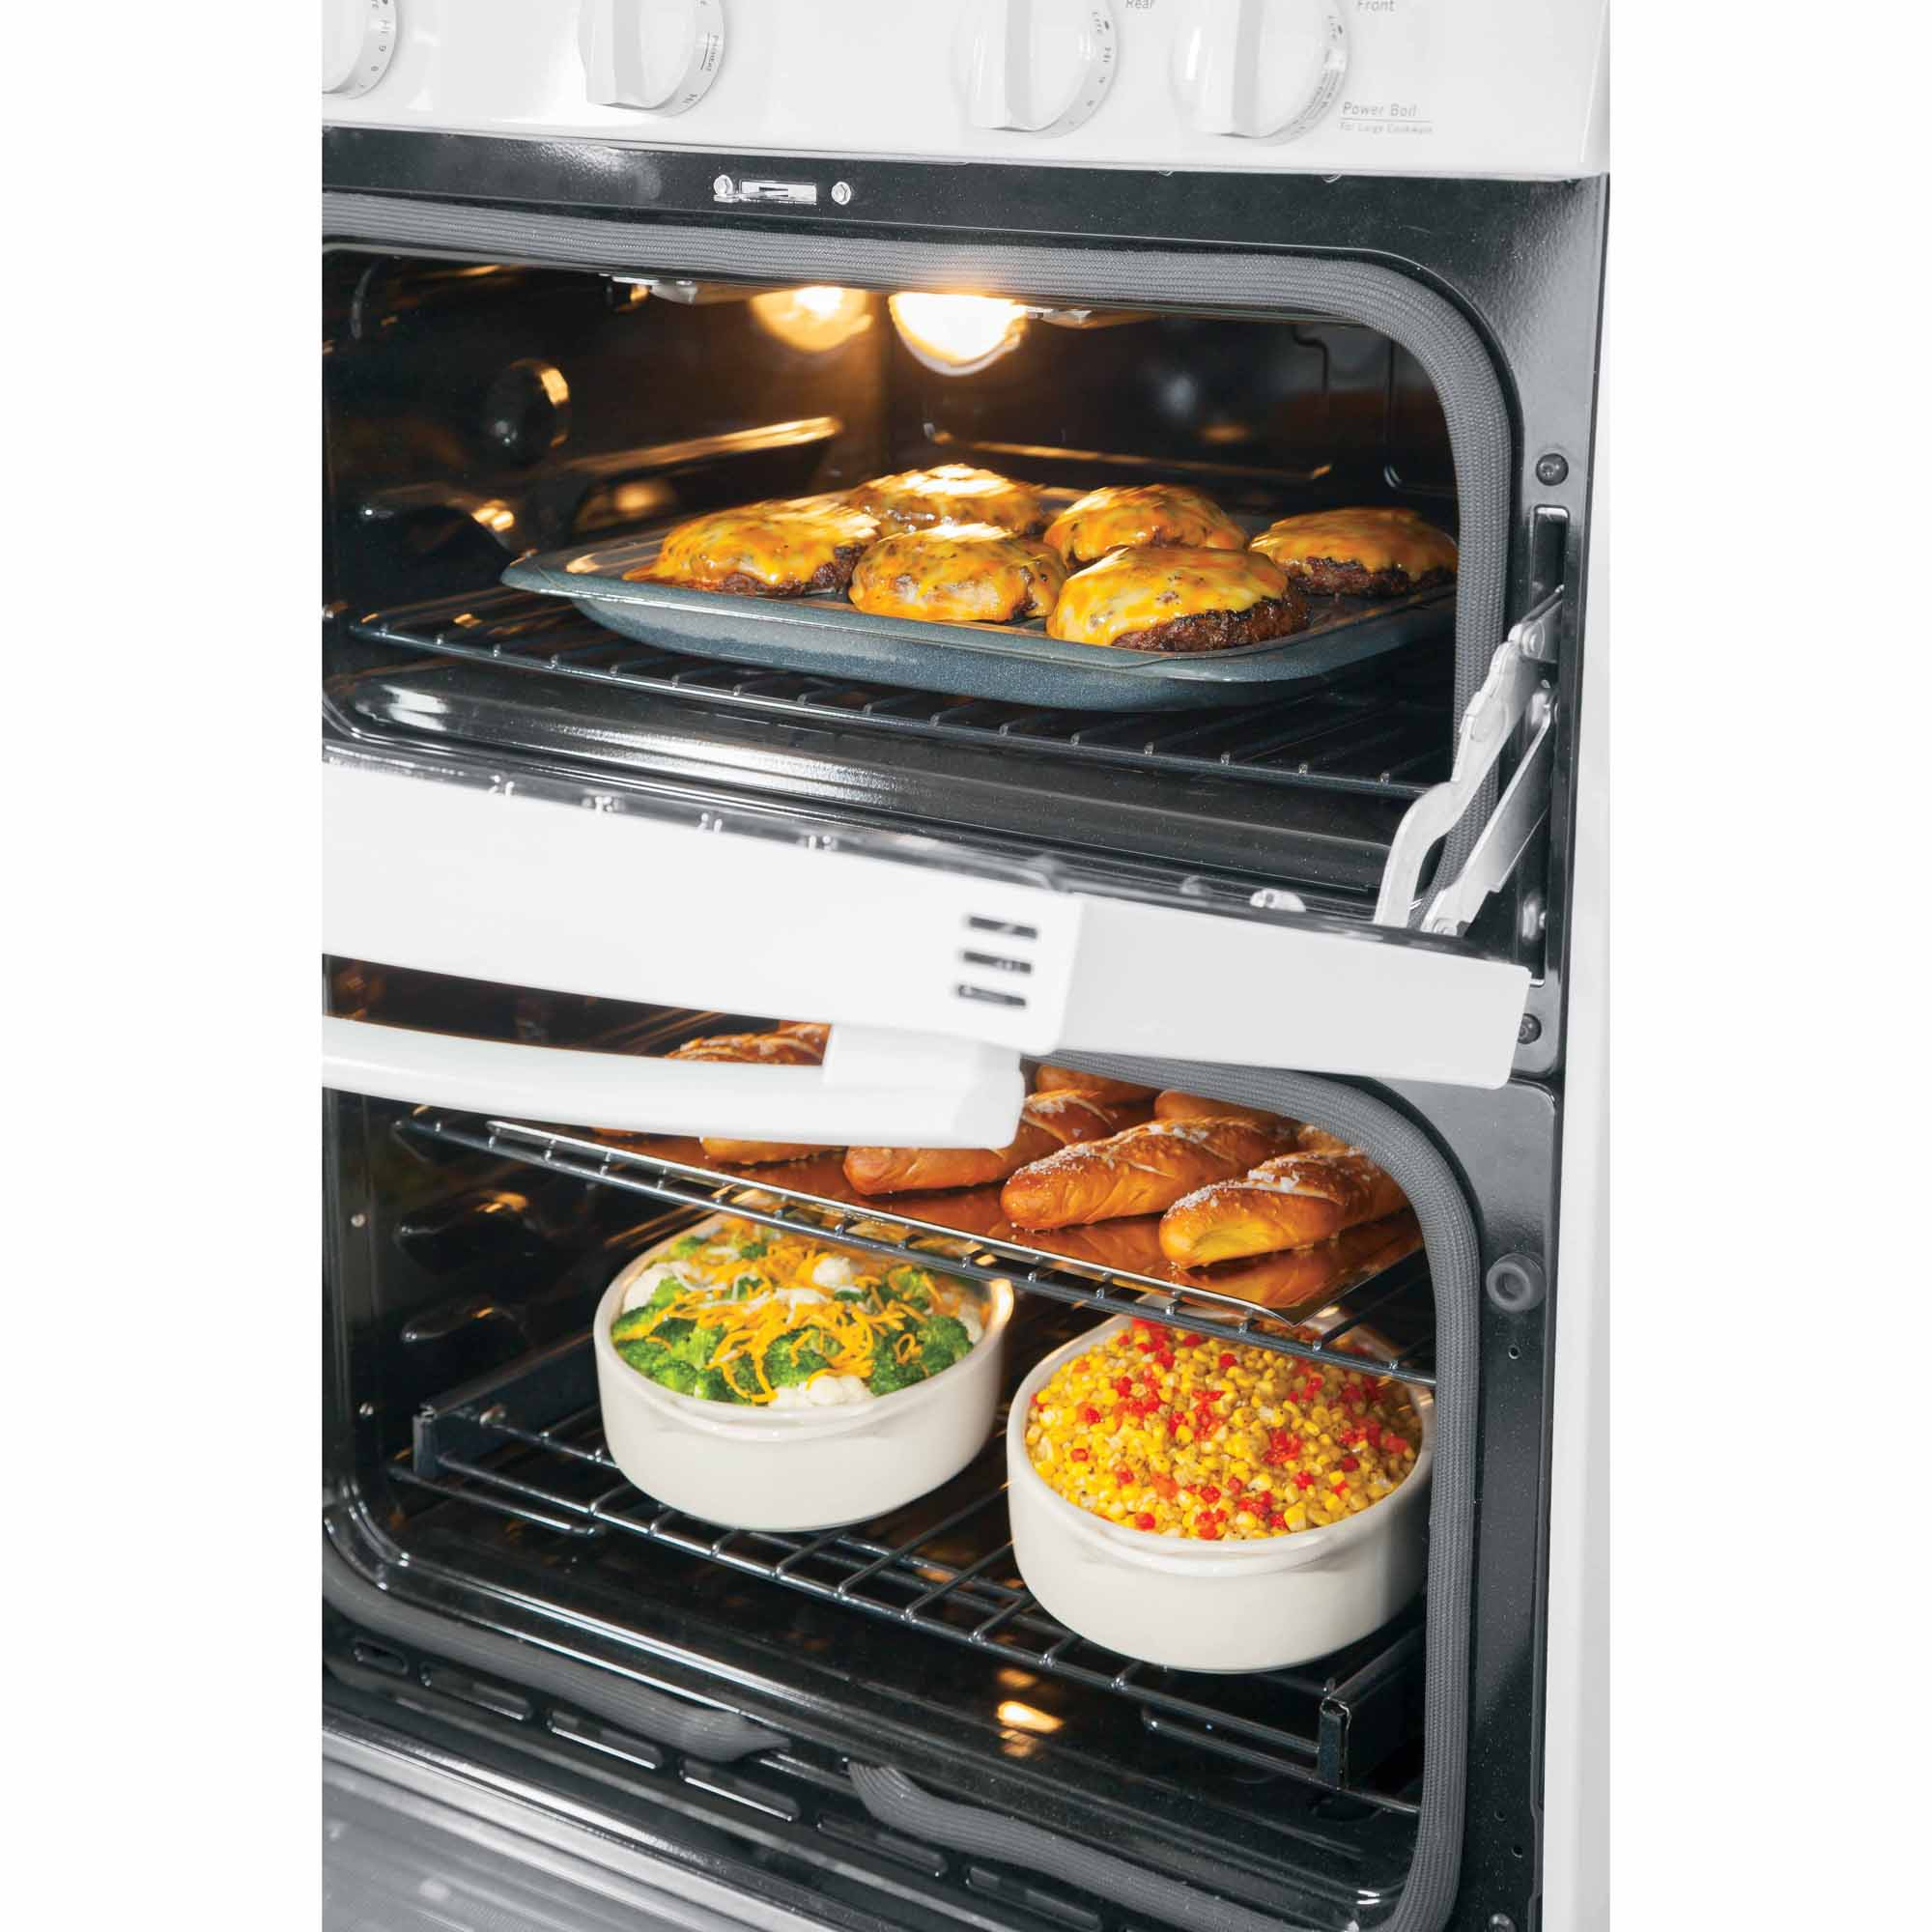 GE Profile 6.8 cu. ft. Double-Oven Gas Range w/ Convection - White